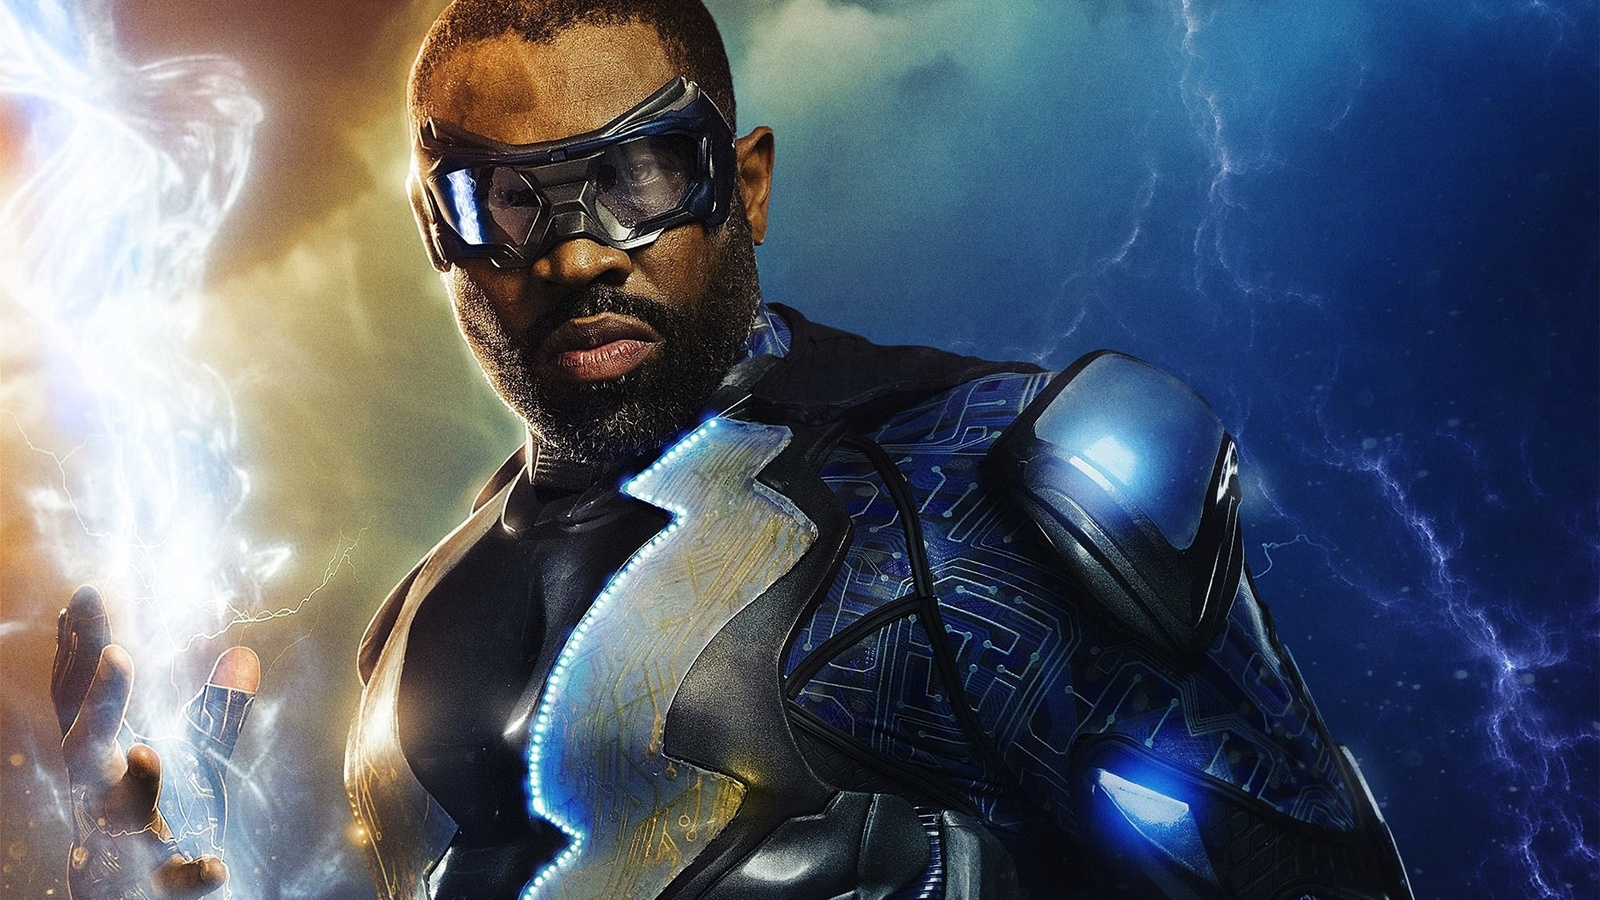 Черная молния/Black Lightning background